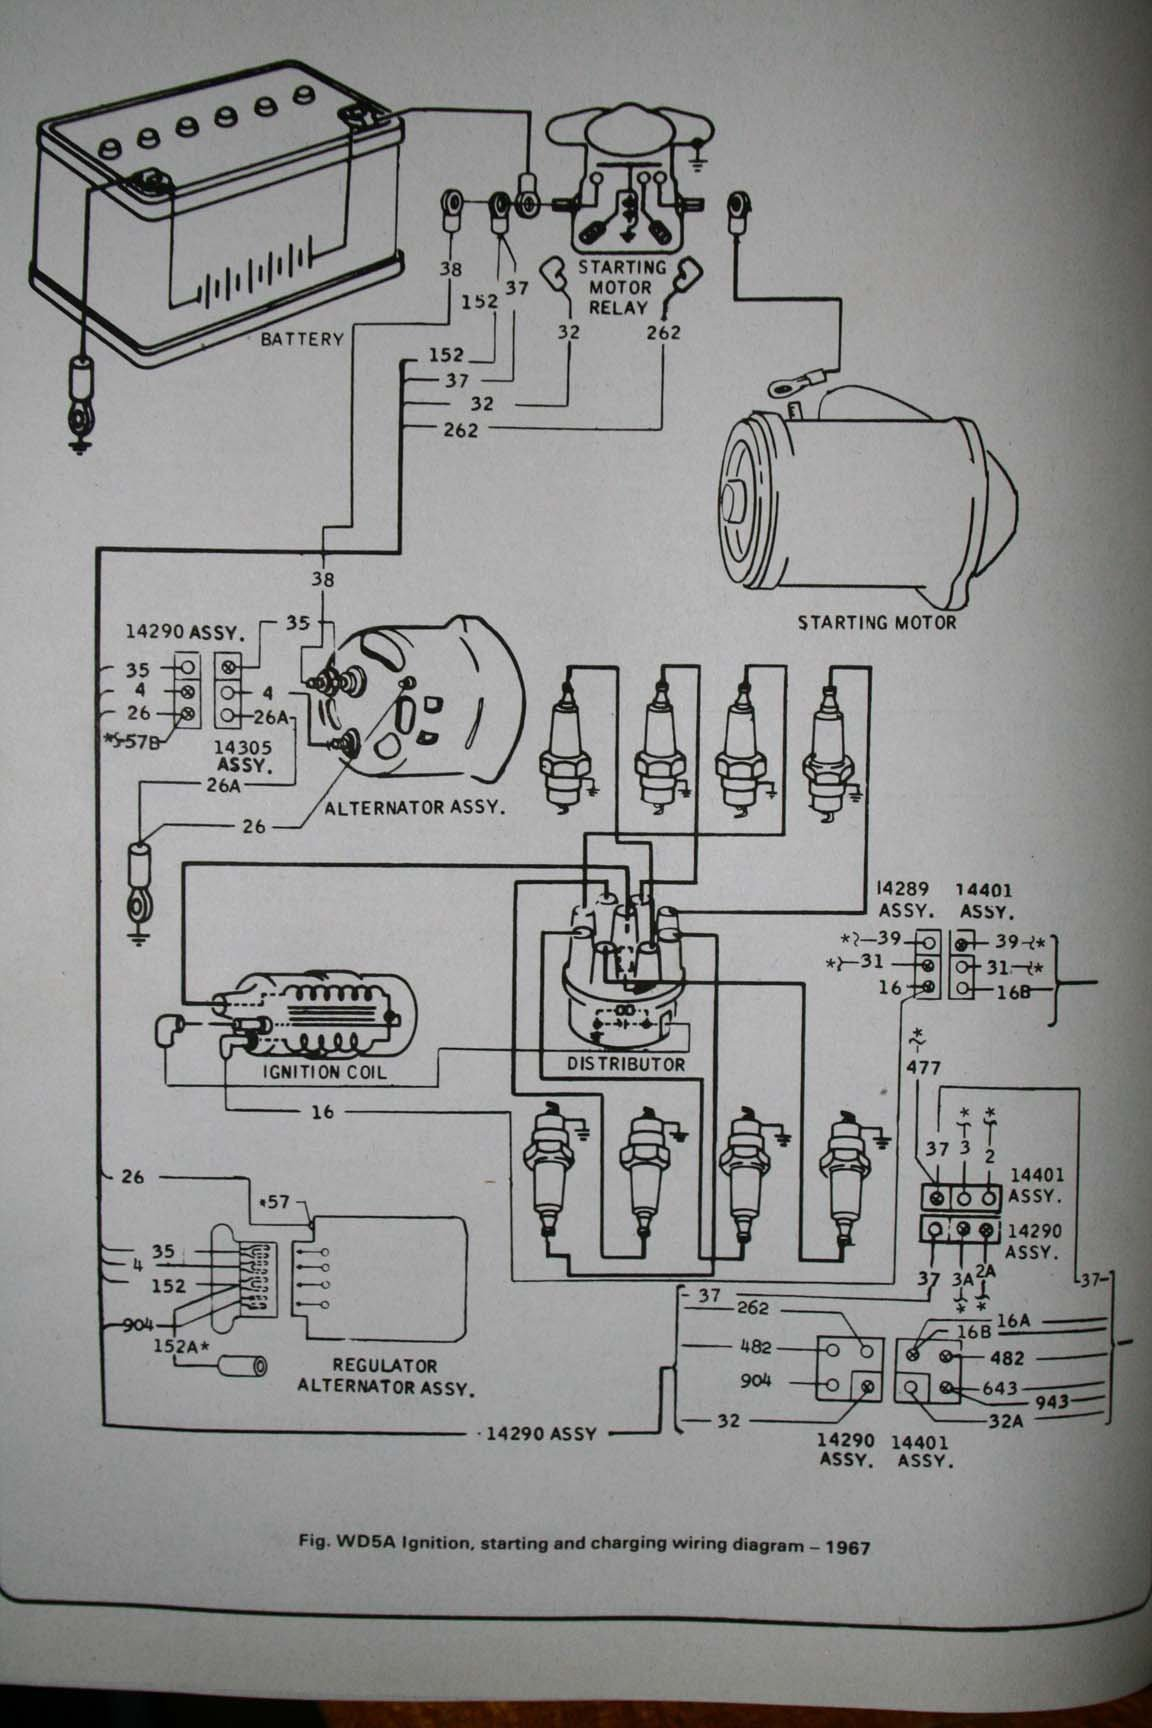 161544d1344372414 voltage regulator alt wiring 67 coupe have wire im not sure what do 1967 starting charging diagram voltage regulator alt wiring on 67 coupe, have a wire i'm not sure 68 Mustang Wiring Diagram at webbmarketing.co